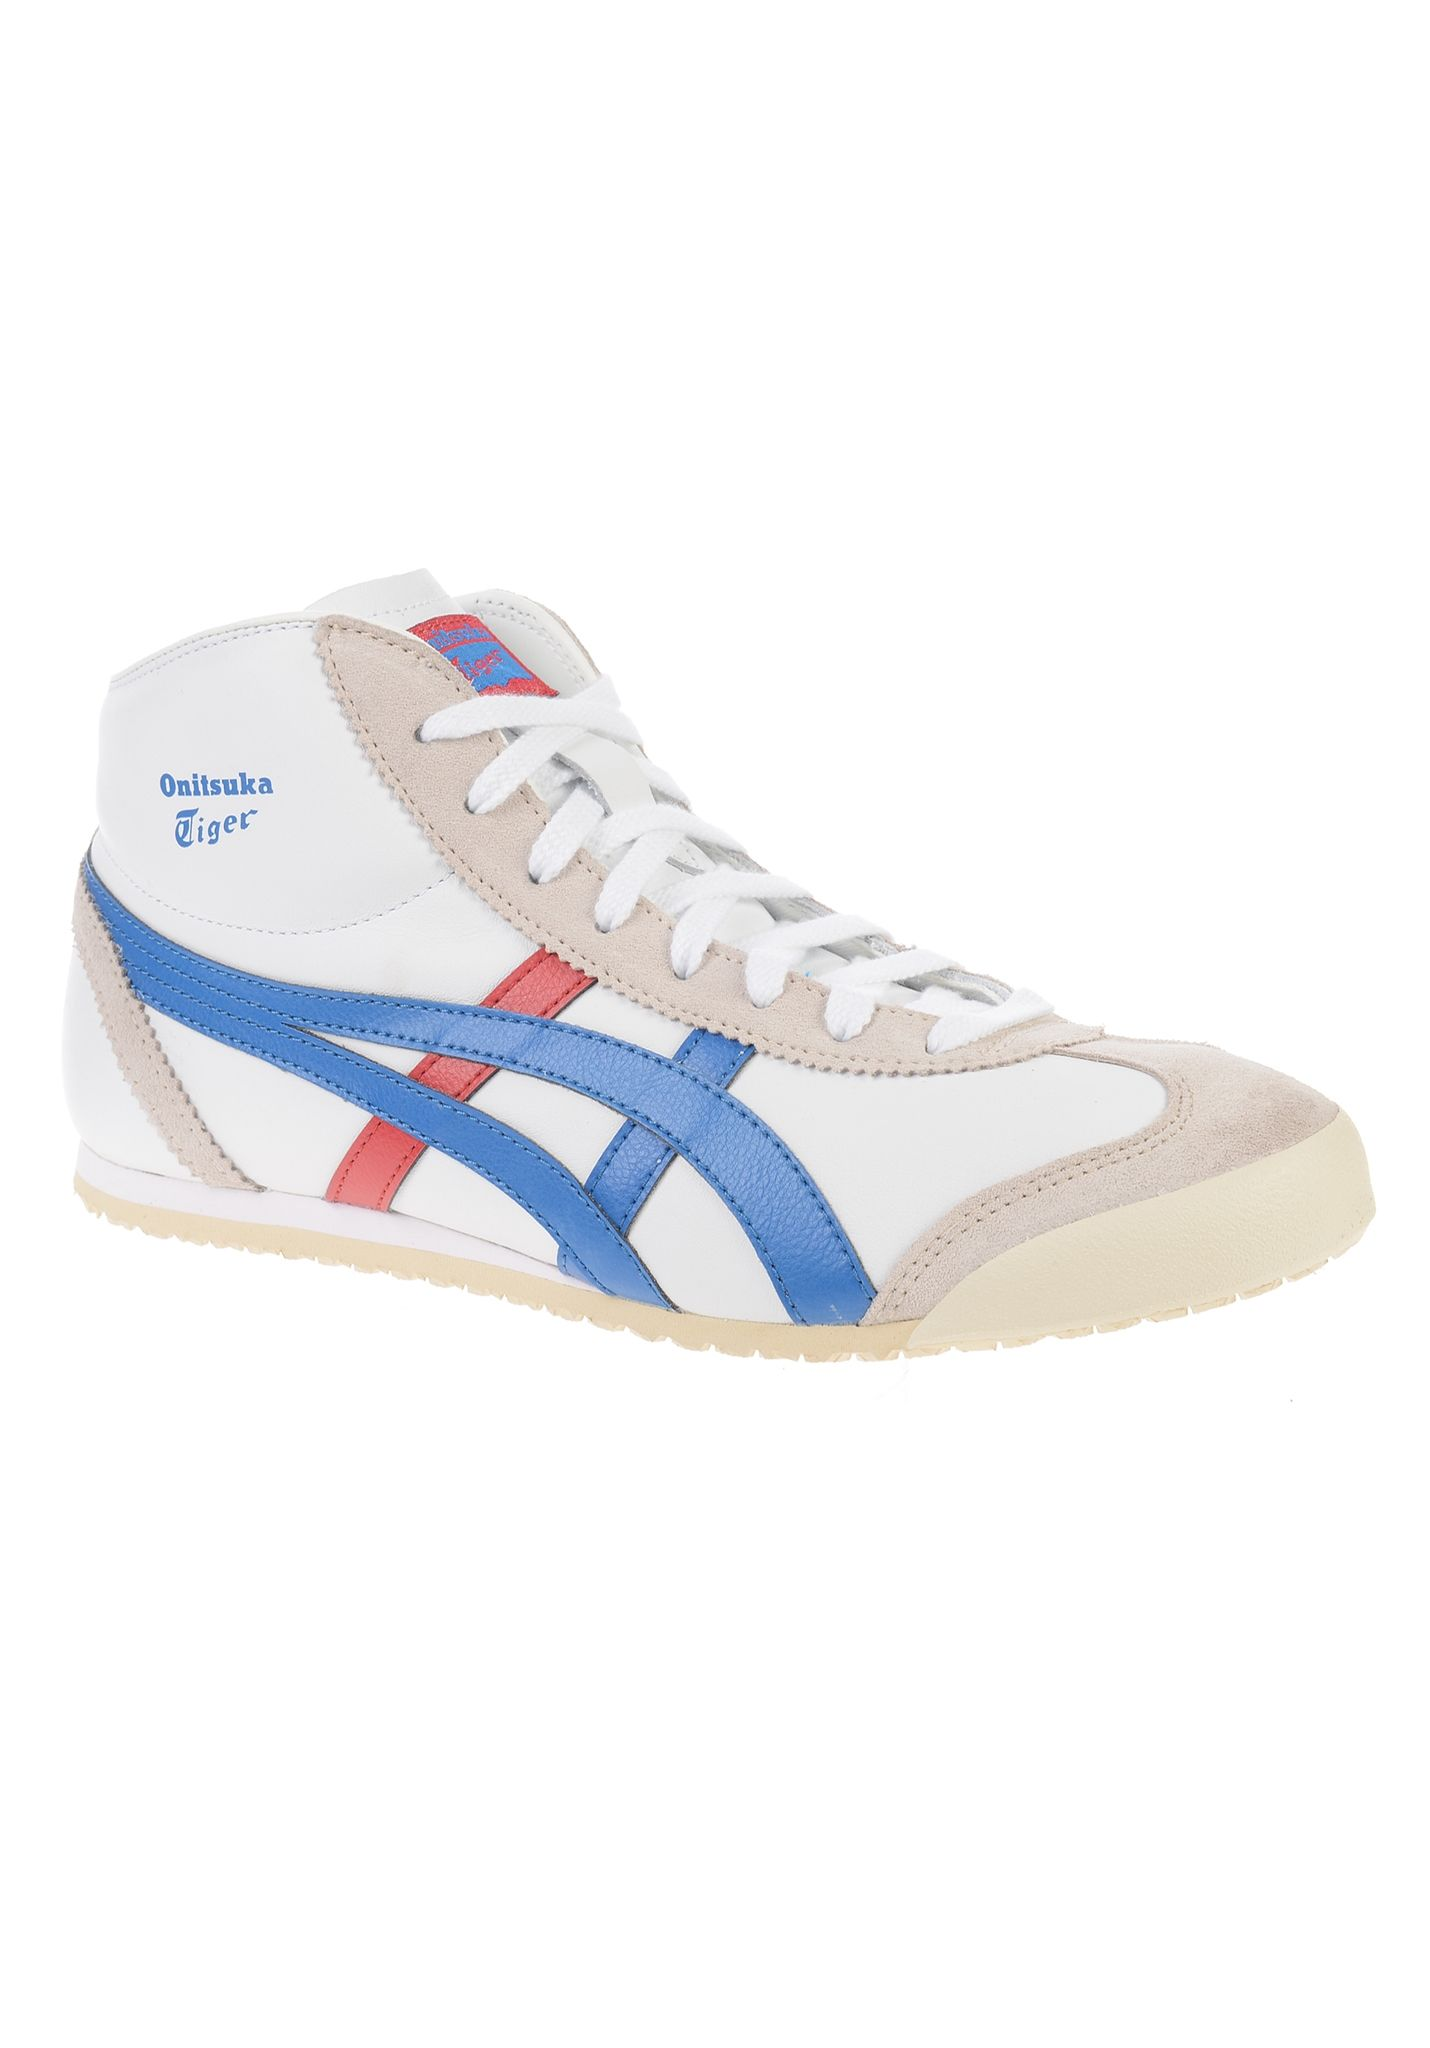 best sneakers 39a87 7bf0d Onitsuka Tiger Mexico Mid Runner - Sneakers - White